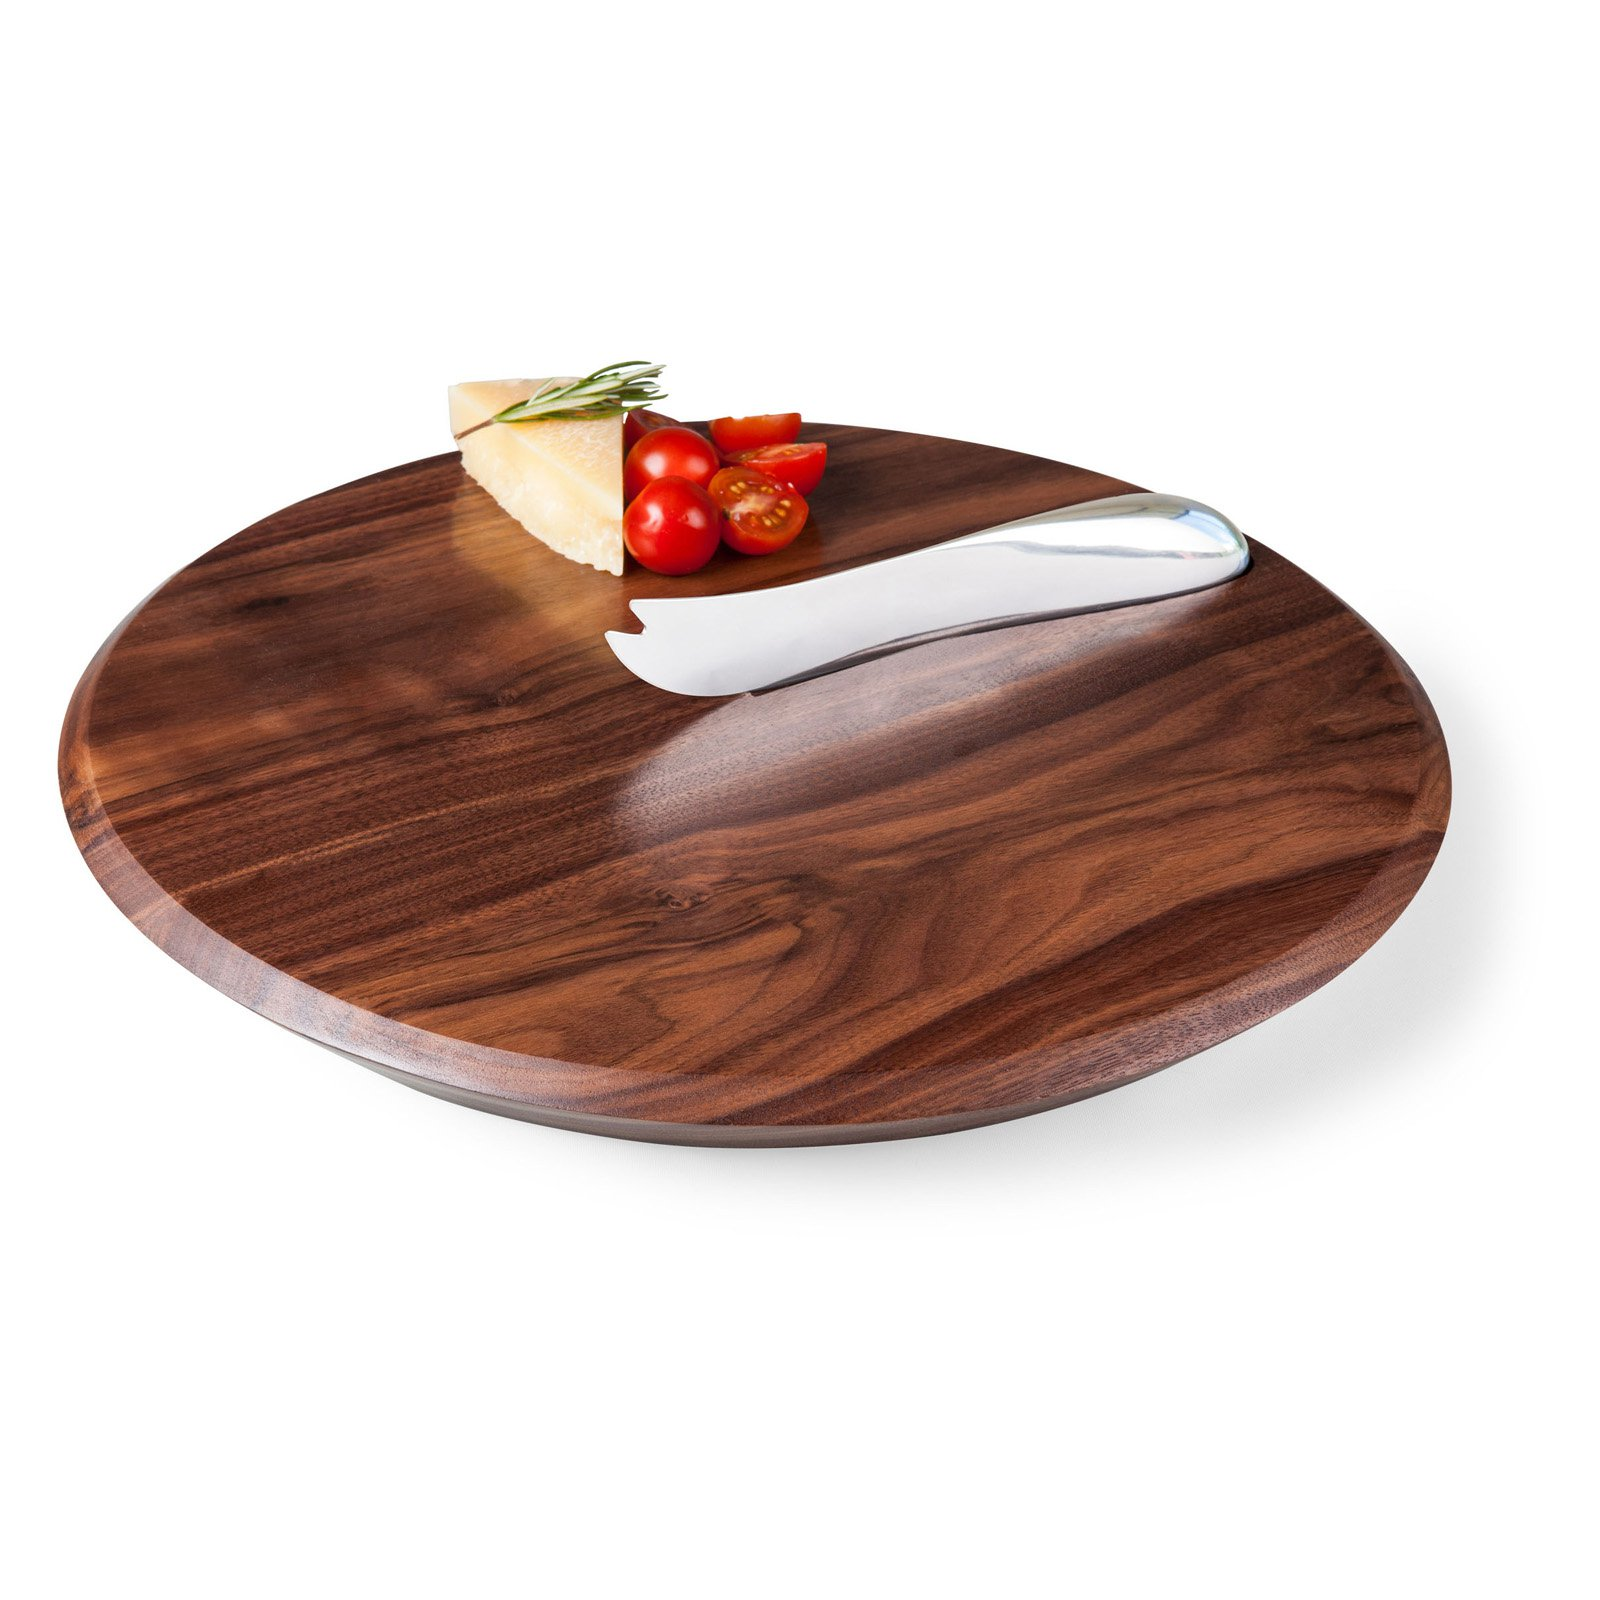 Toscana Solstice Cutting Board and Cheese Knife Set